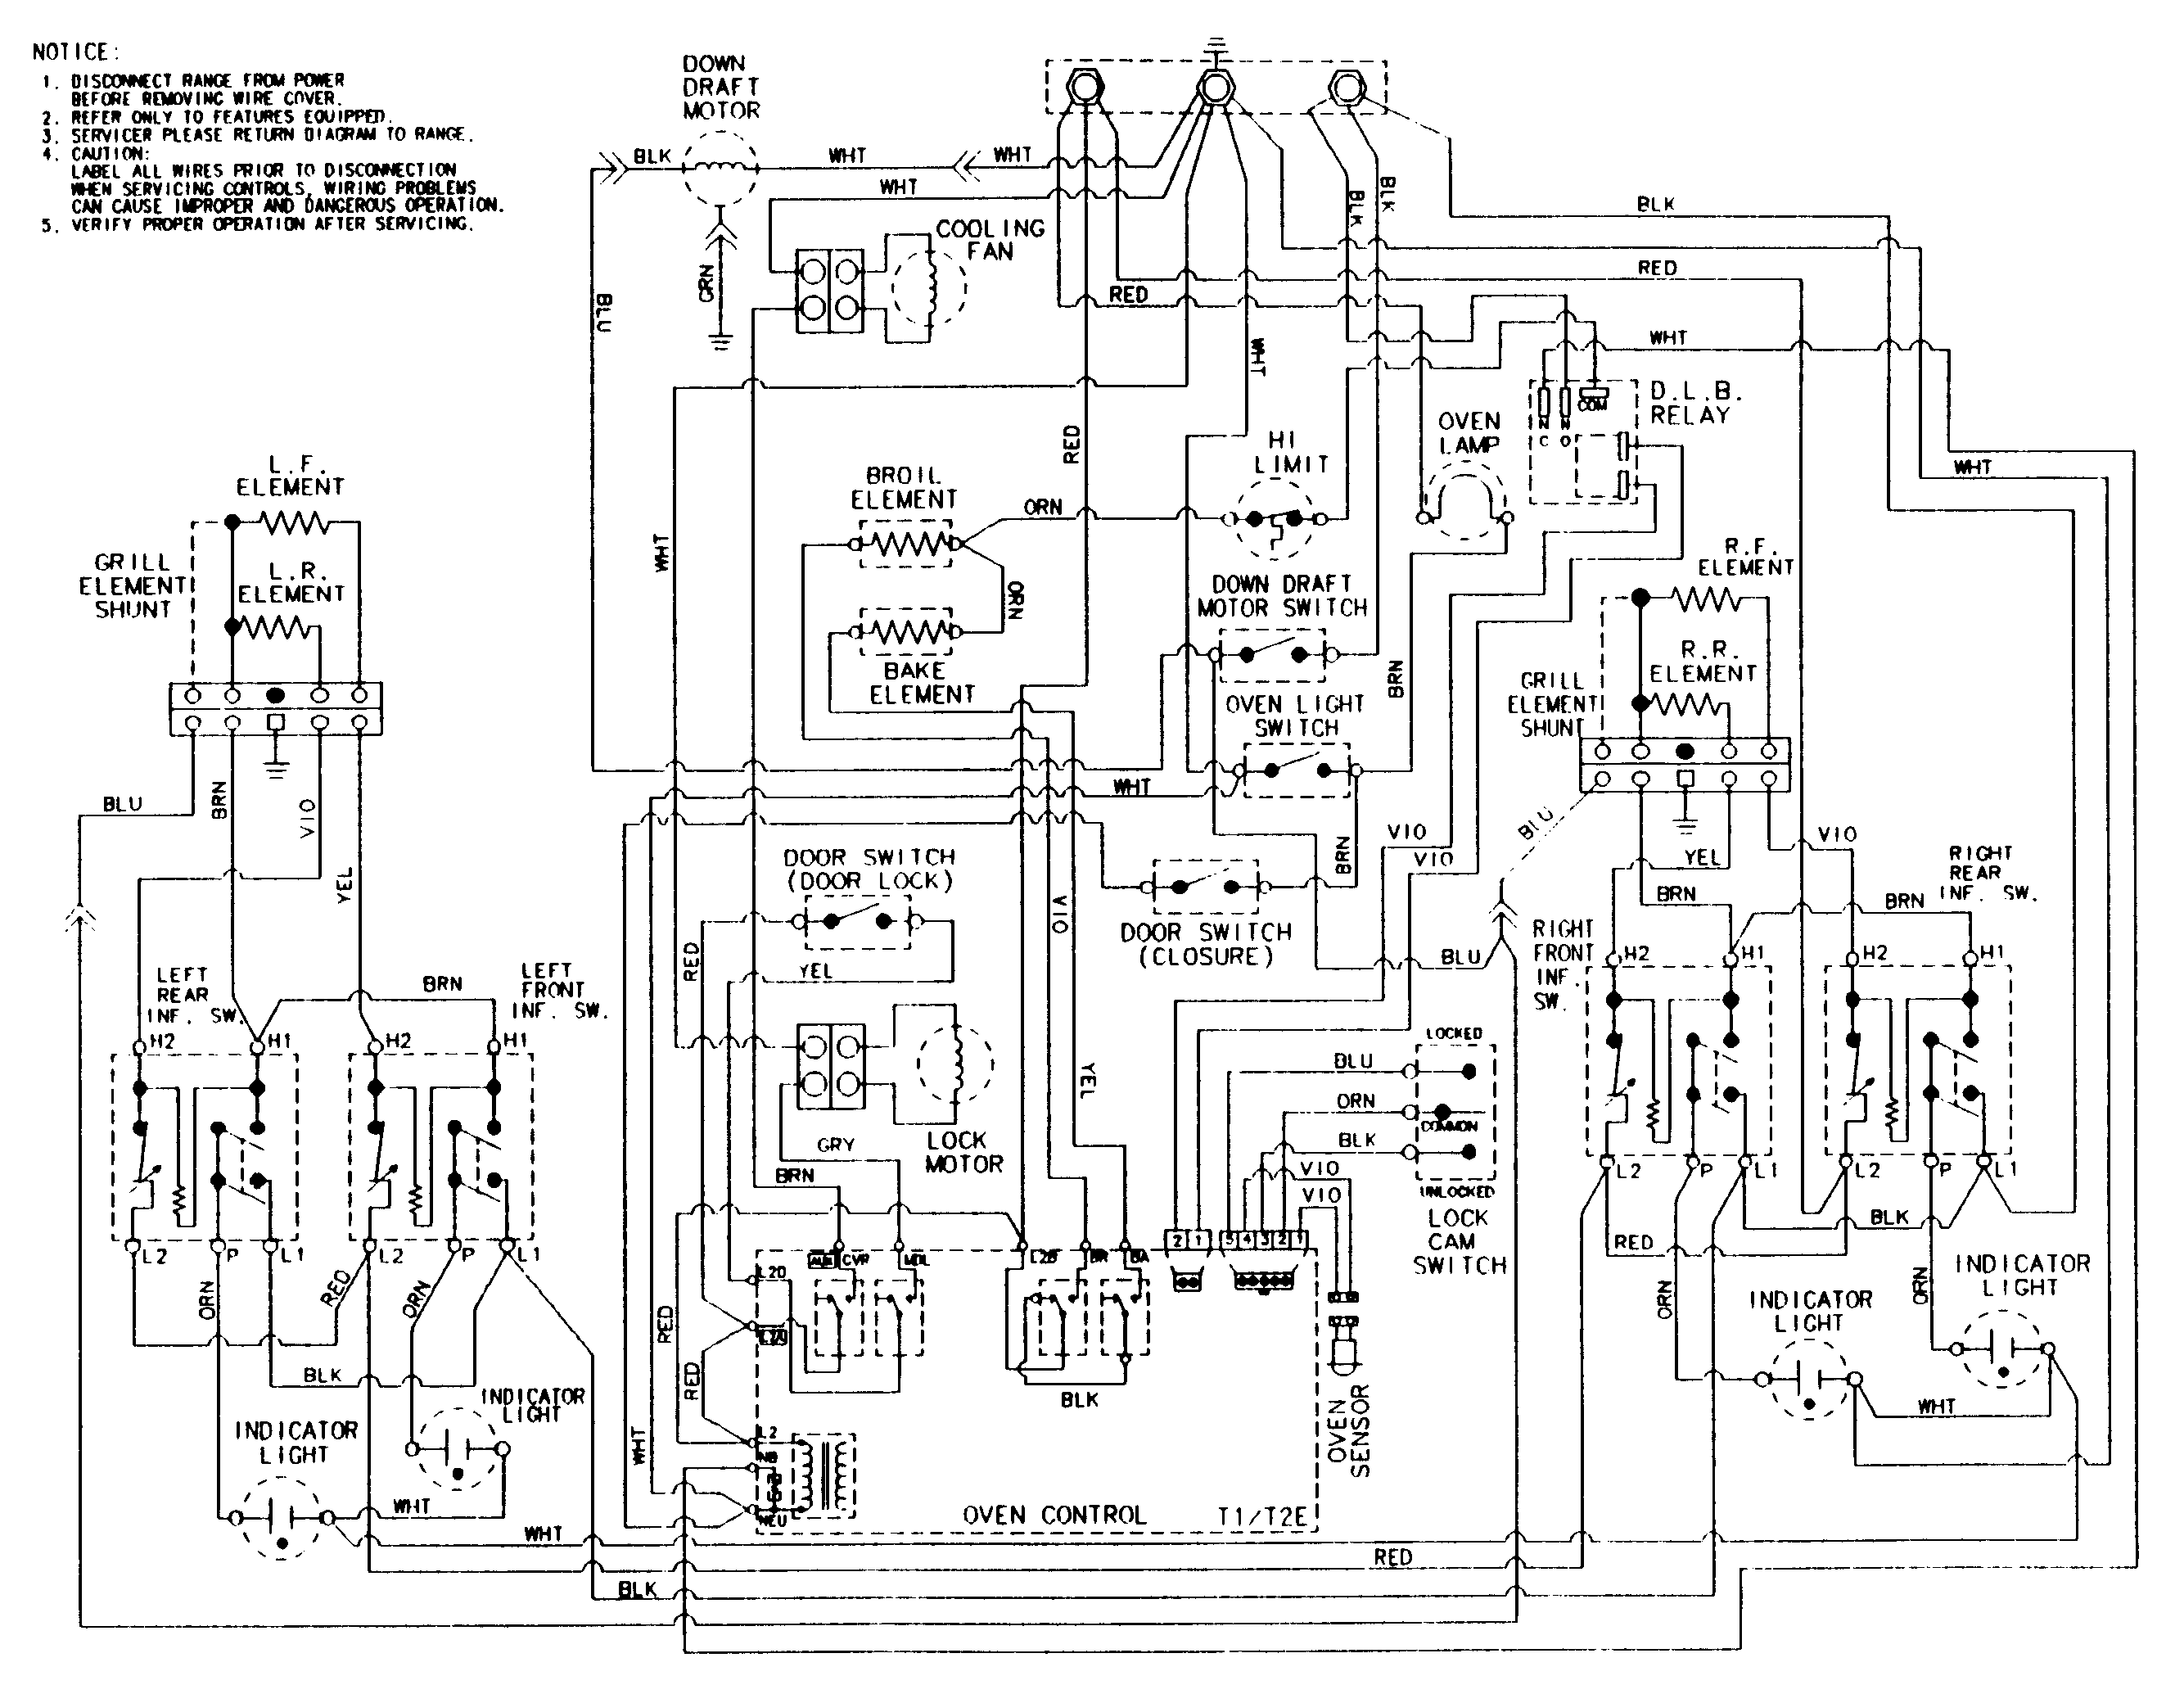 New Wiring Diagram Household Diagram Diagramsample